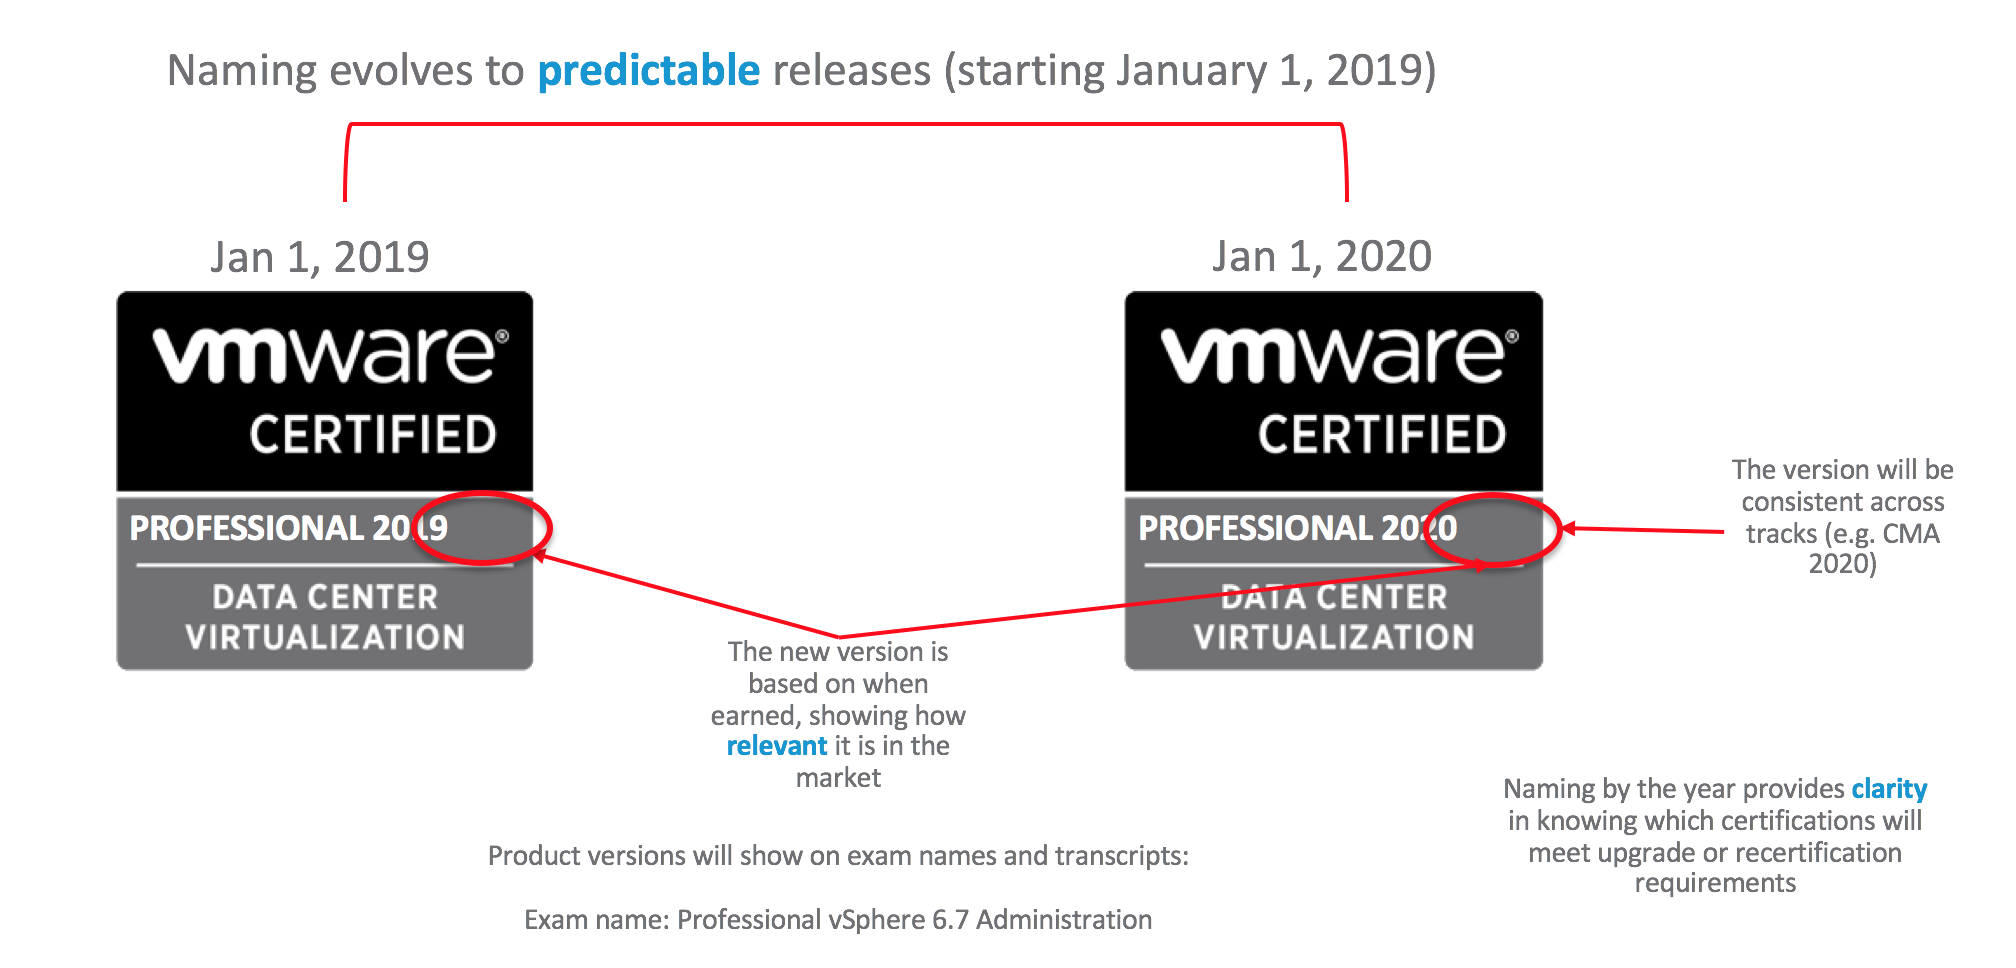 Future Vmware Certifications Will Display The Year They Were Earned